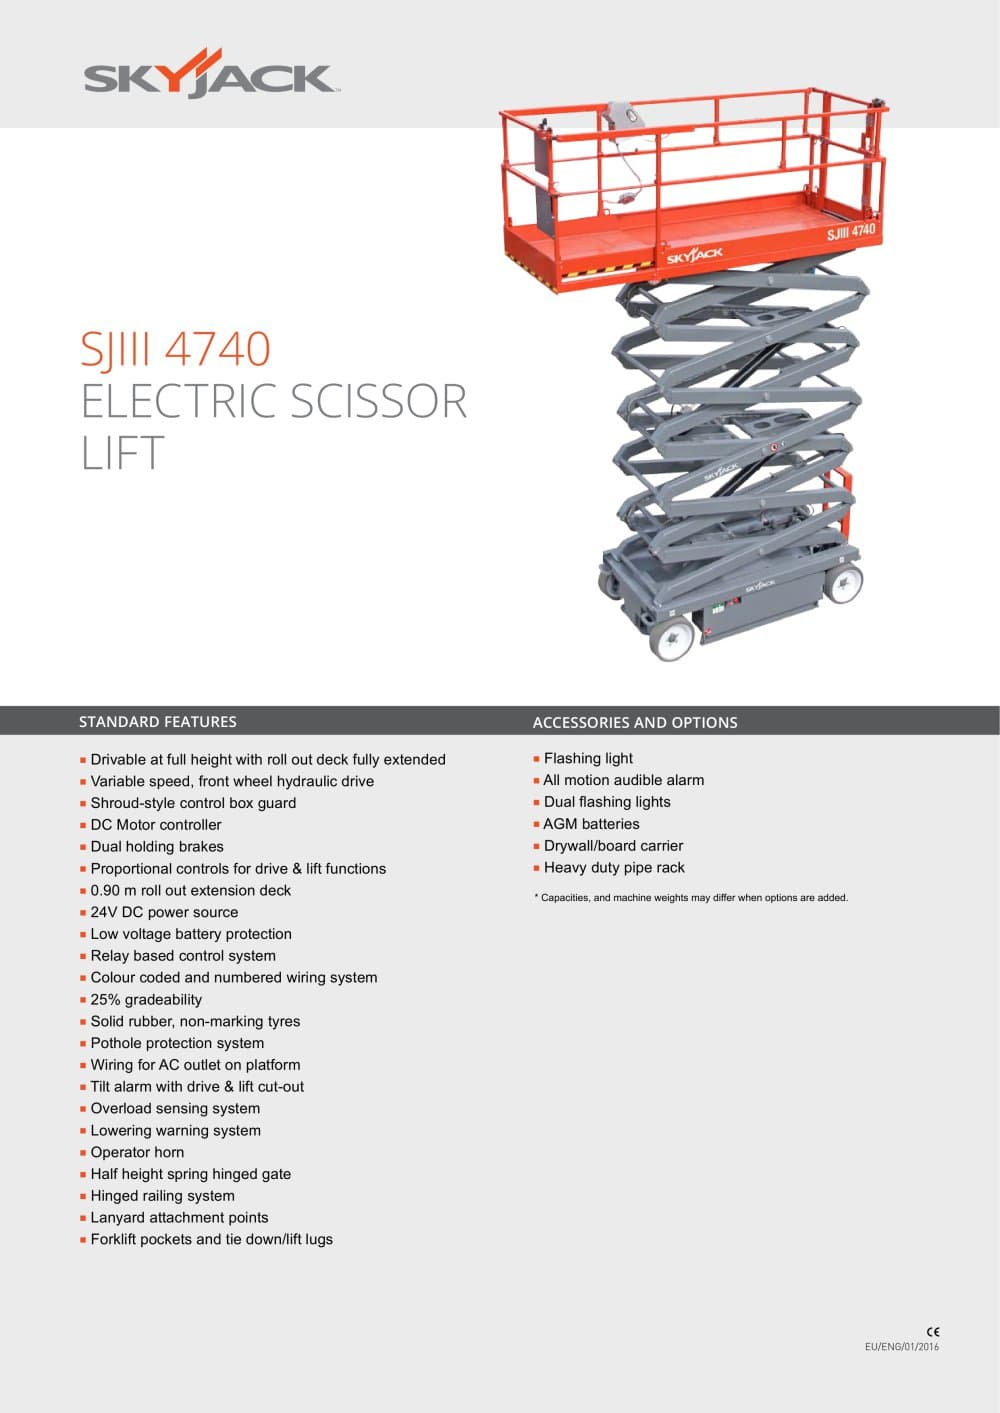 Skyjack Wiring Diagrams Library Scissors Lift Wire Diagram Electric Scissor Sjiii 4740 1 2 Pages